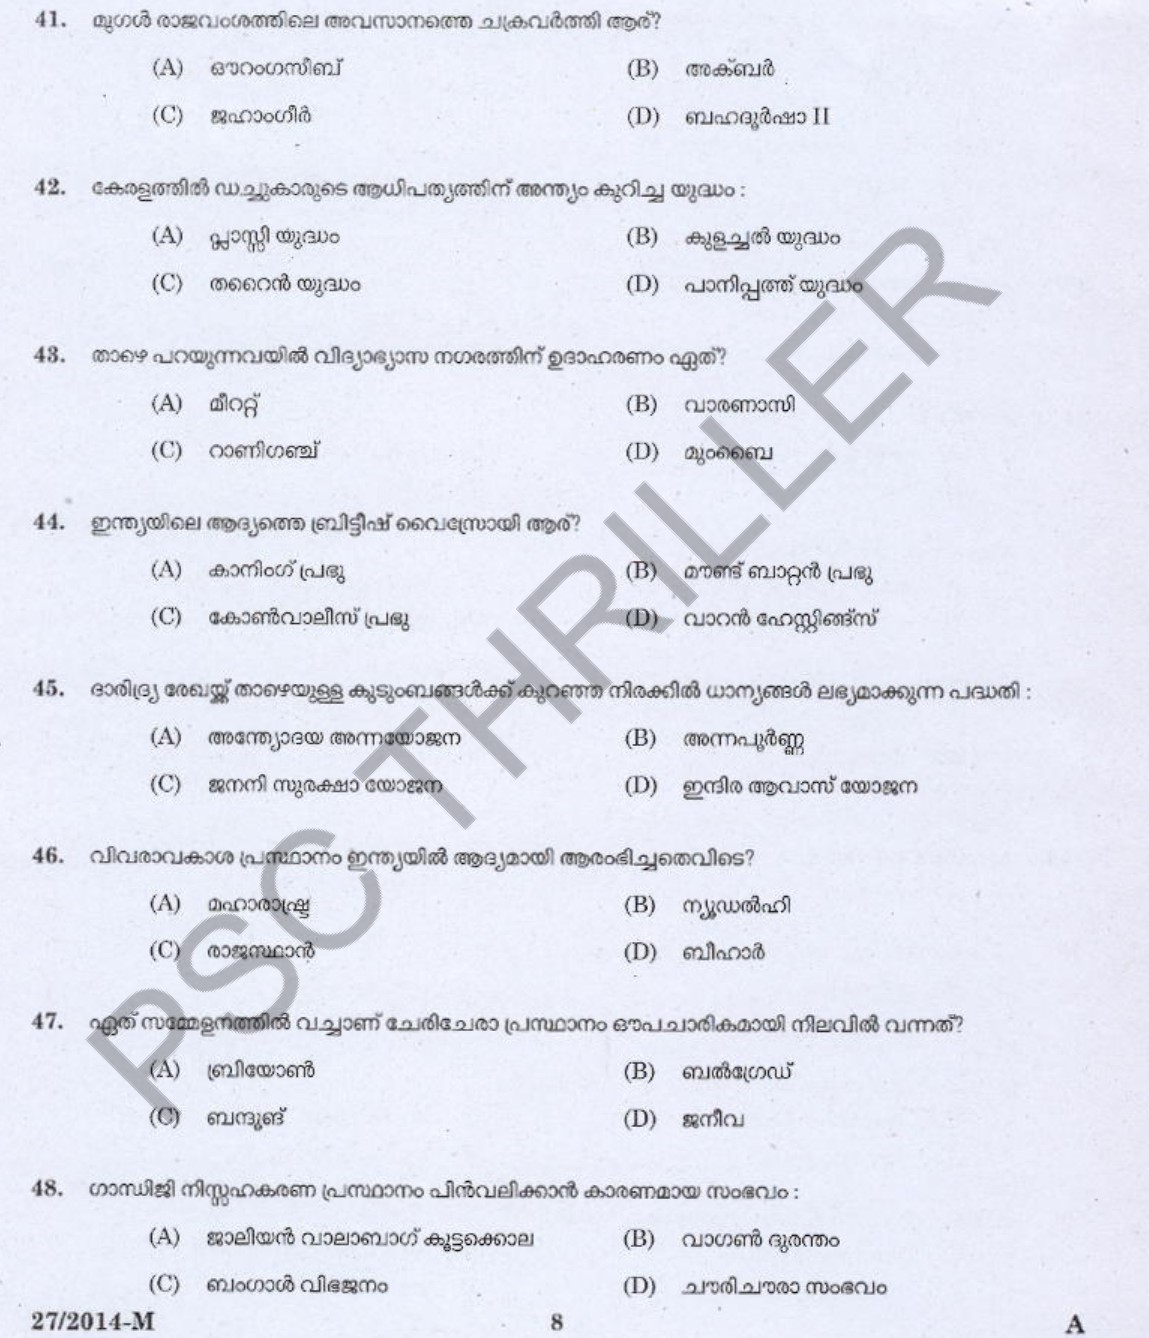 LDC - Question Paper with Answer Key (27/2014)- Kerala PSC